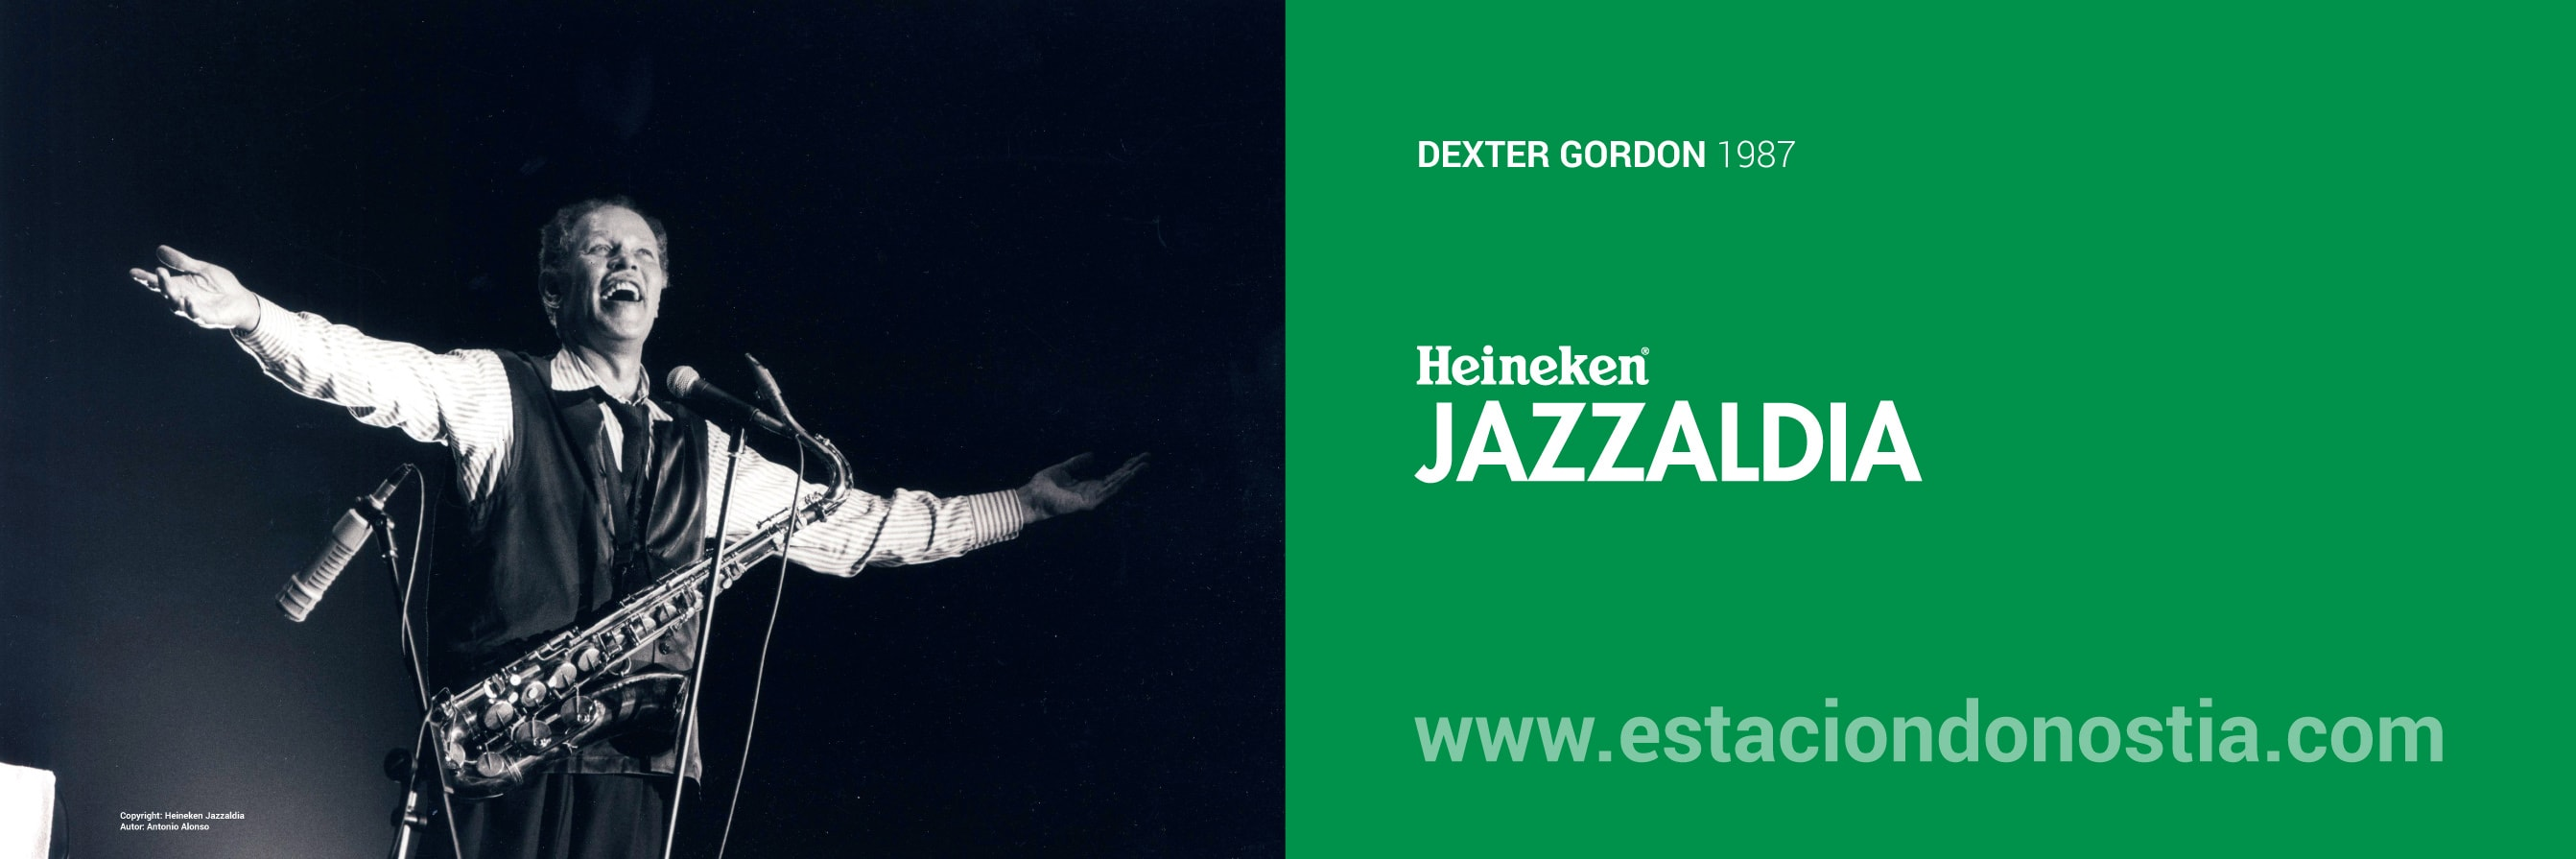 Dexter Gordon (1987)